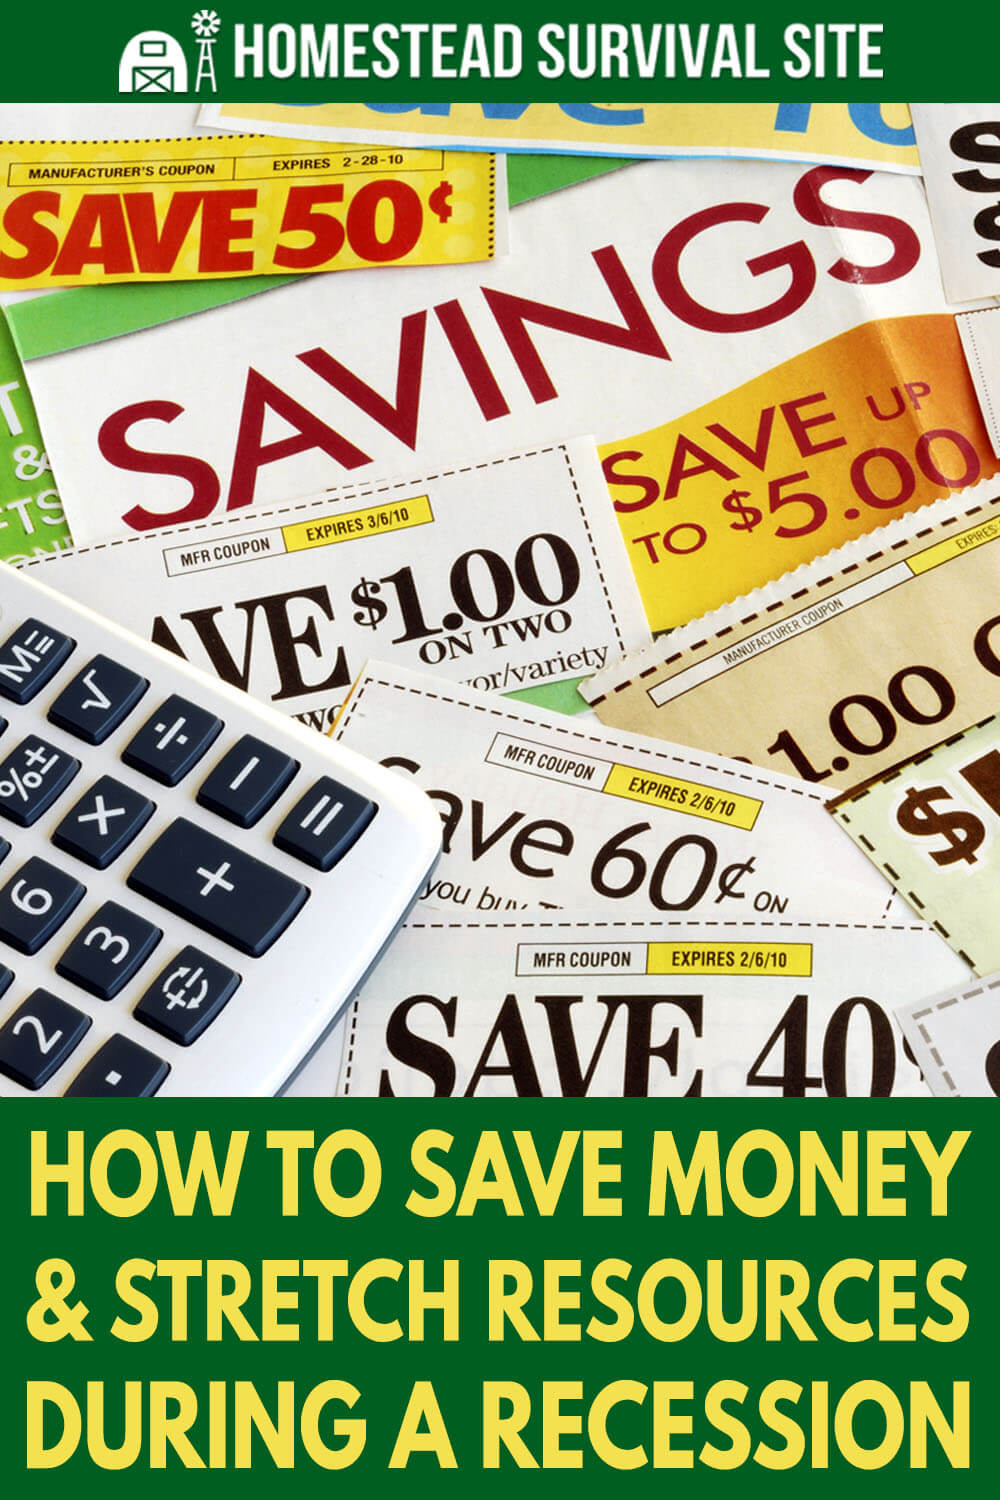 How To Save Money And Stretch Resources During A Recession